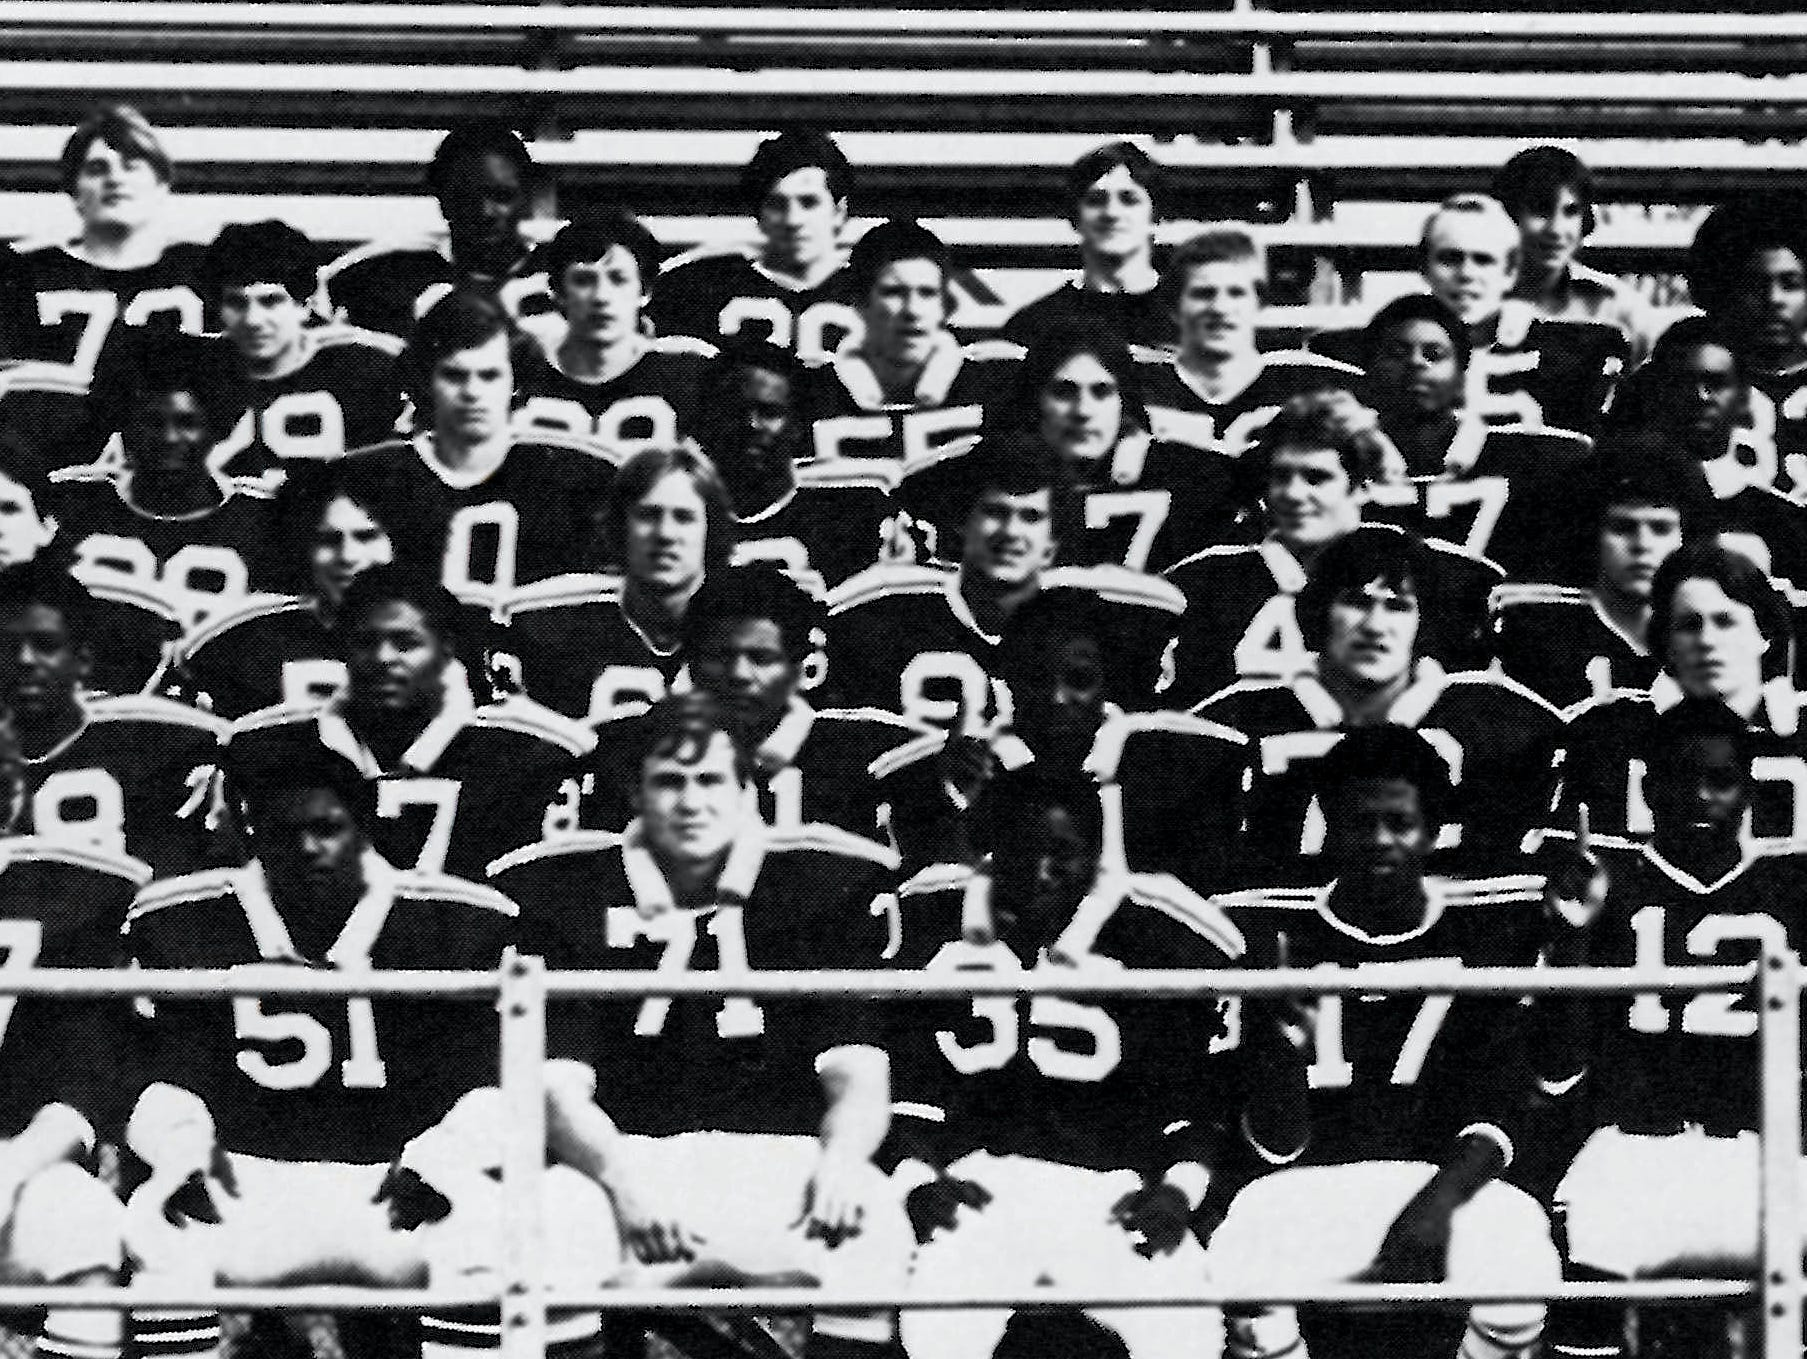 Red Ban's 1975 undefeated state championship team.